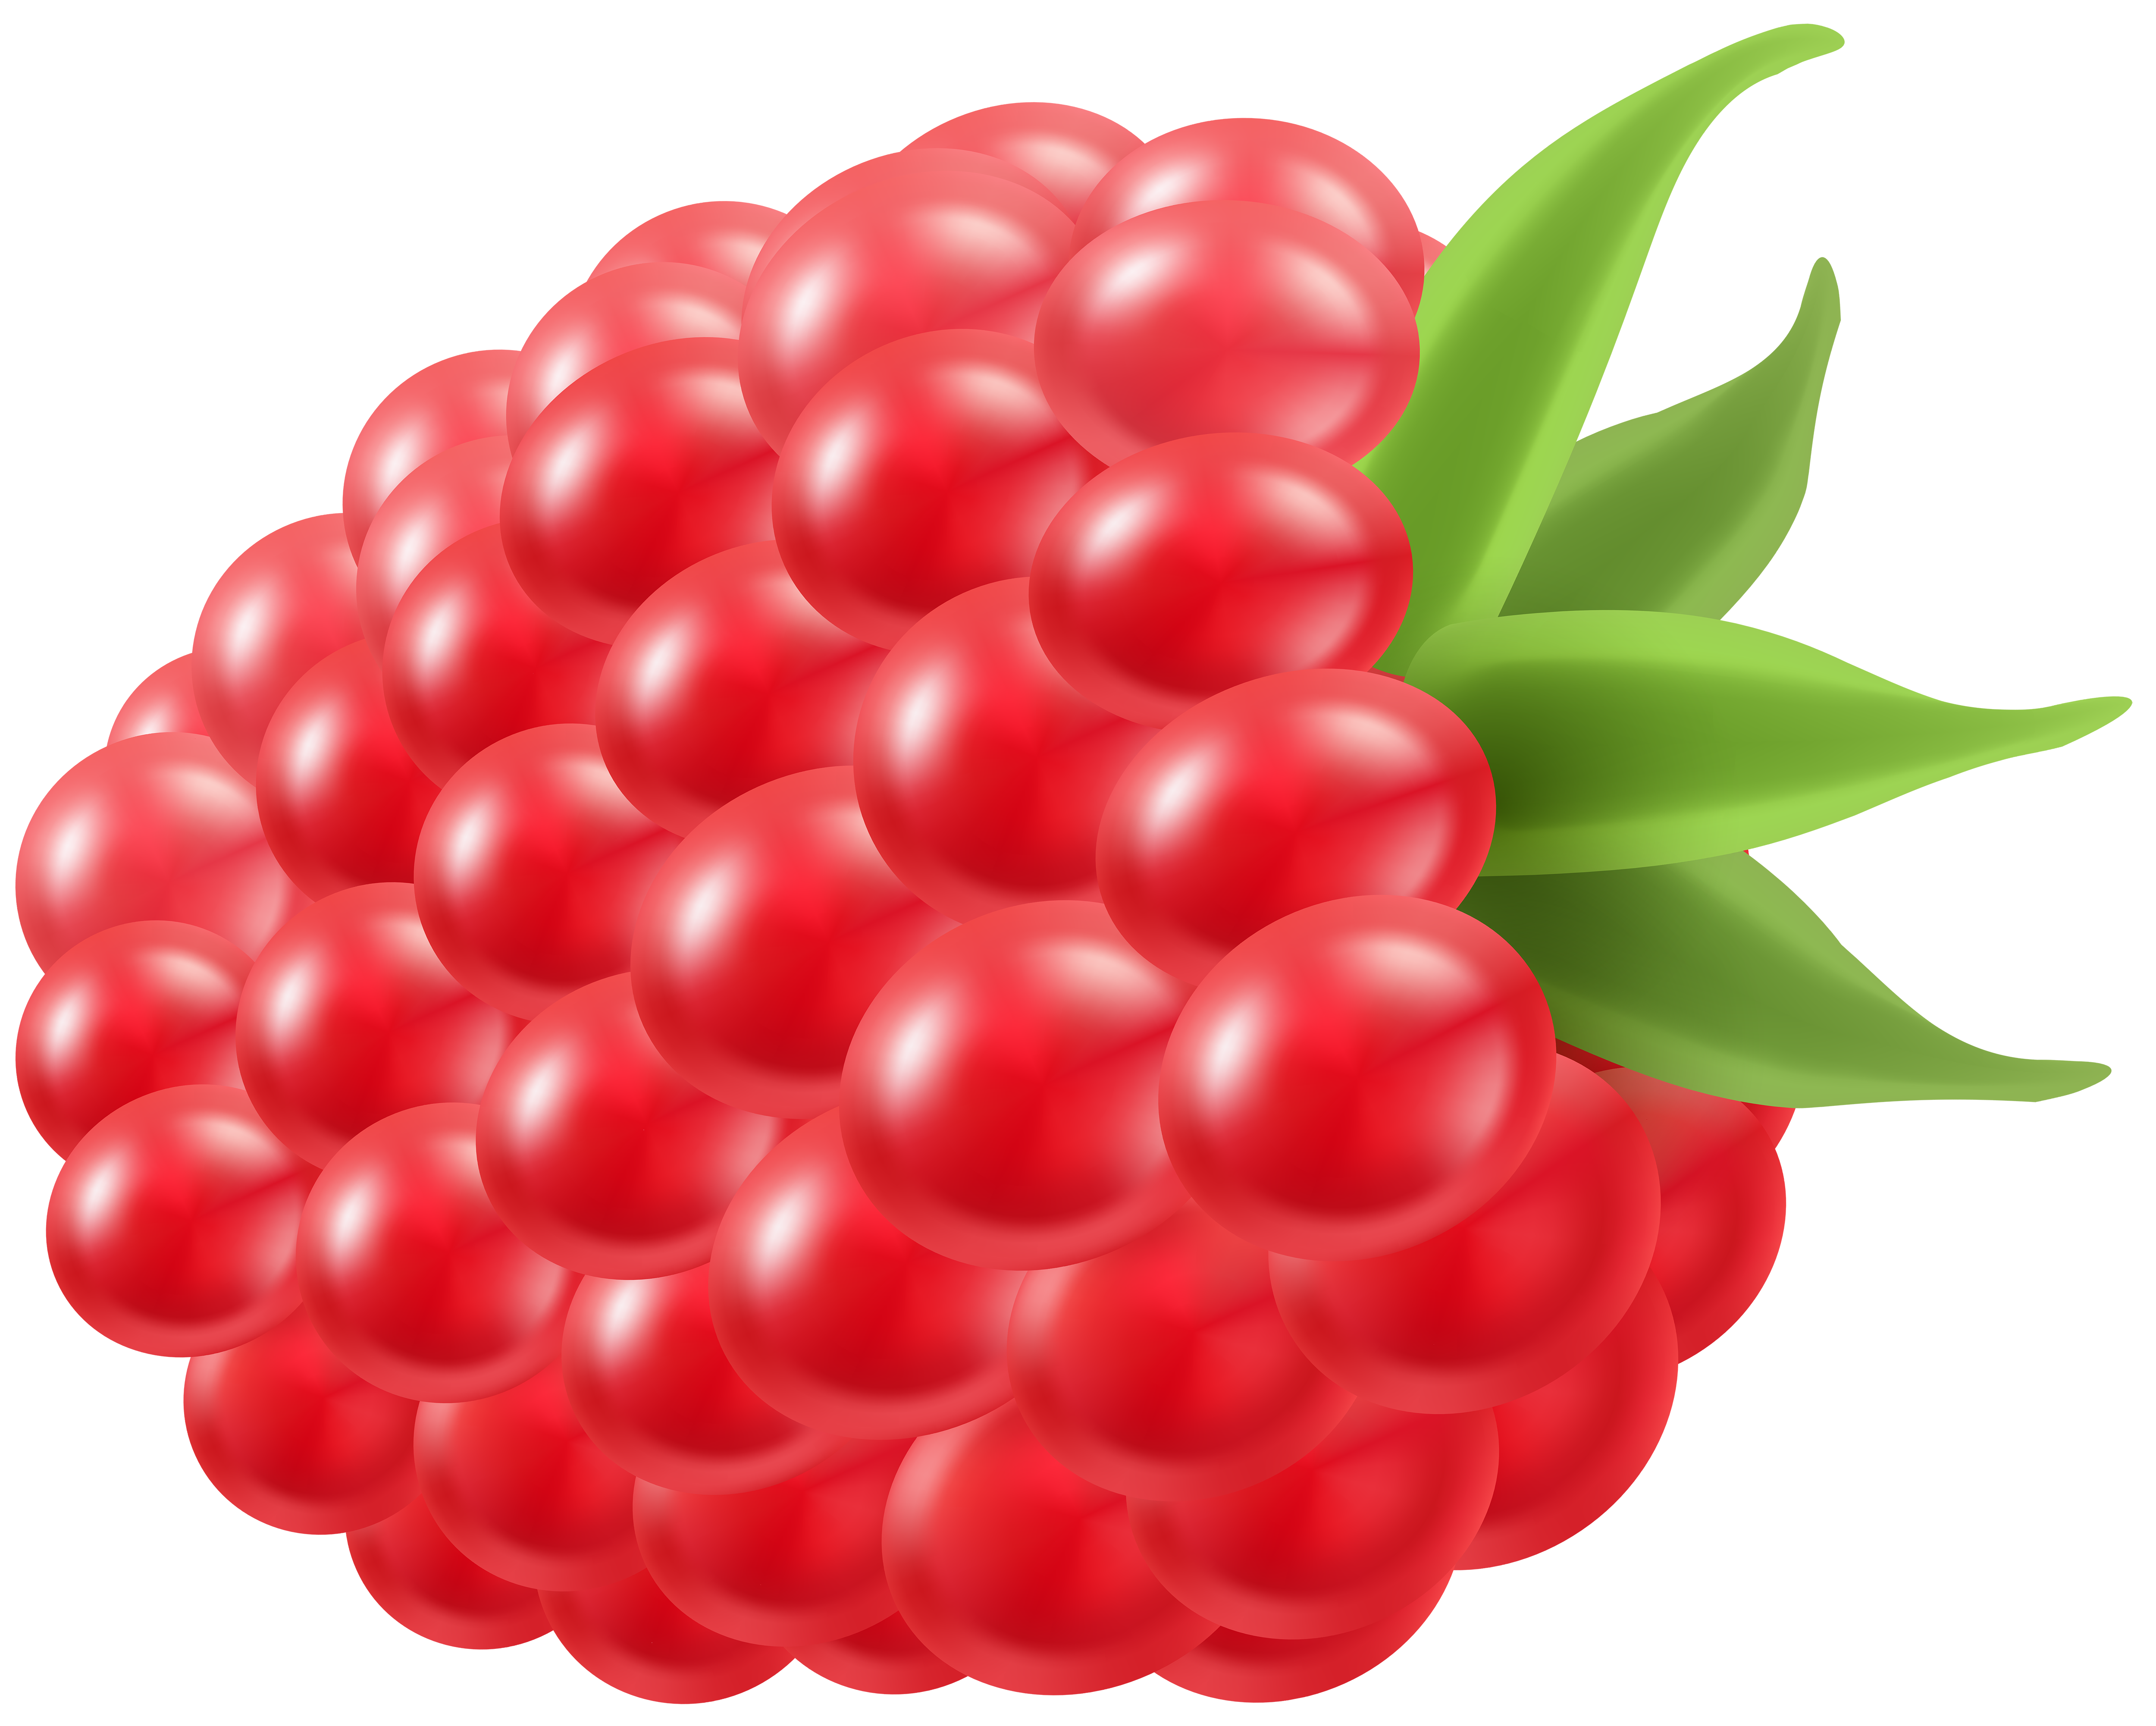 Raspberry clipart #4, Download drawings